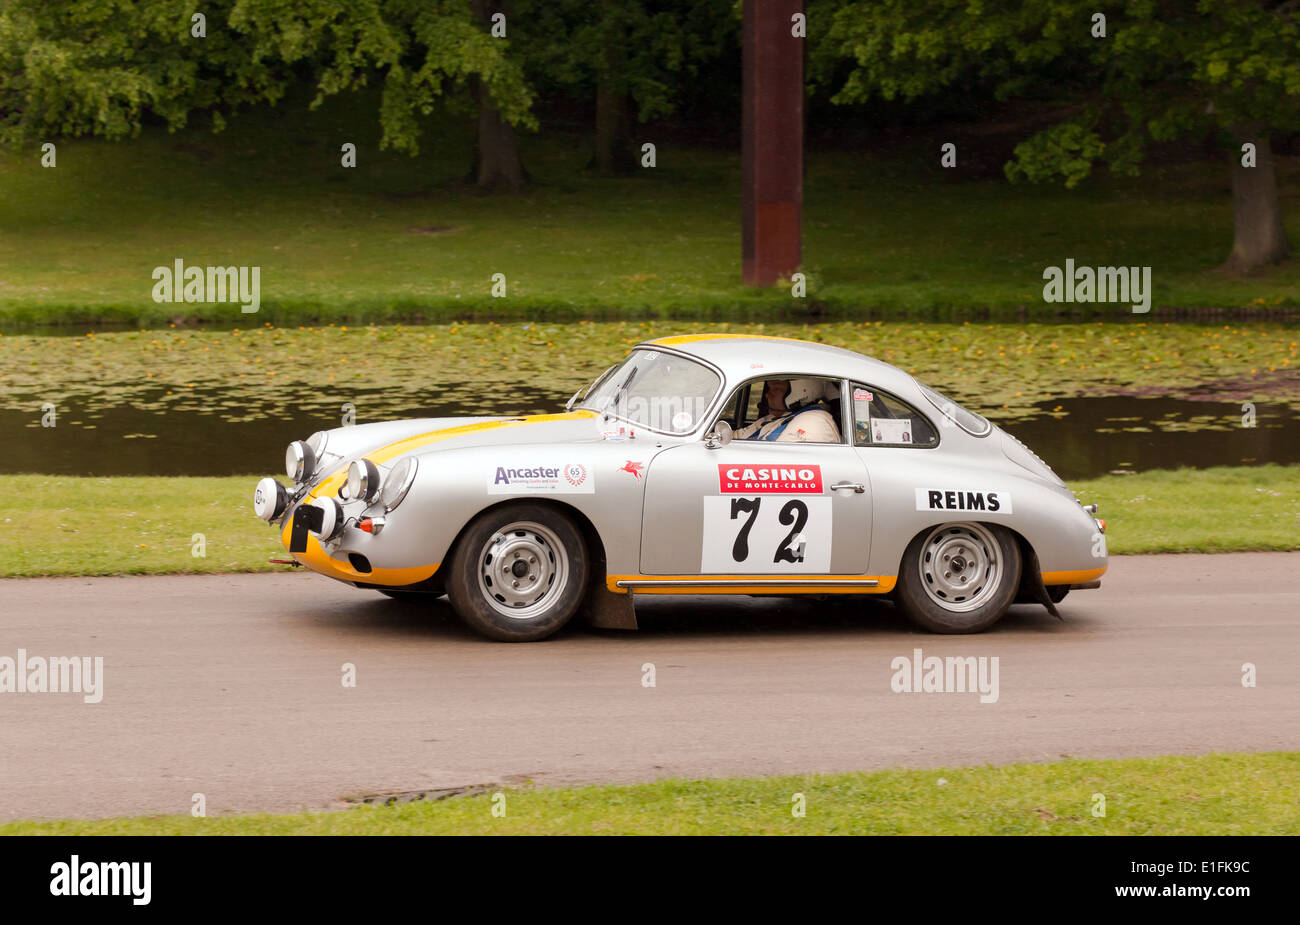 A 1962 Porsche 356, competing in the Sprint race at the  2014  Motorsport at the Place. - Stock Image